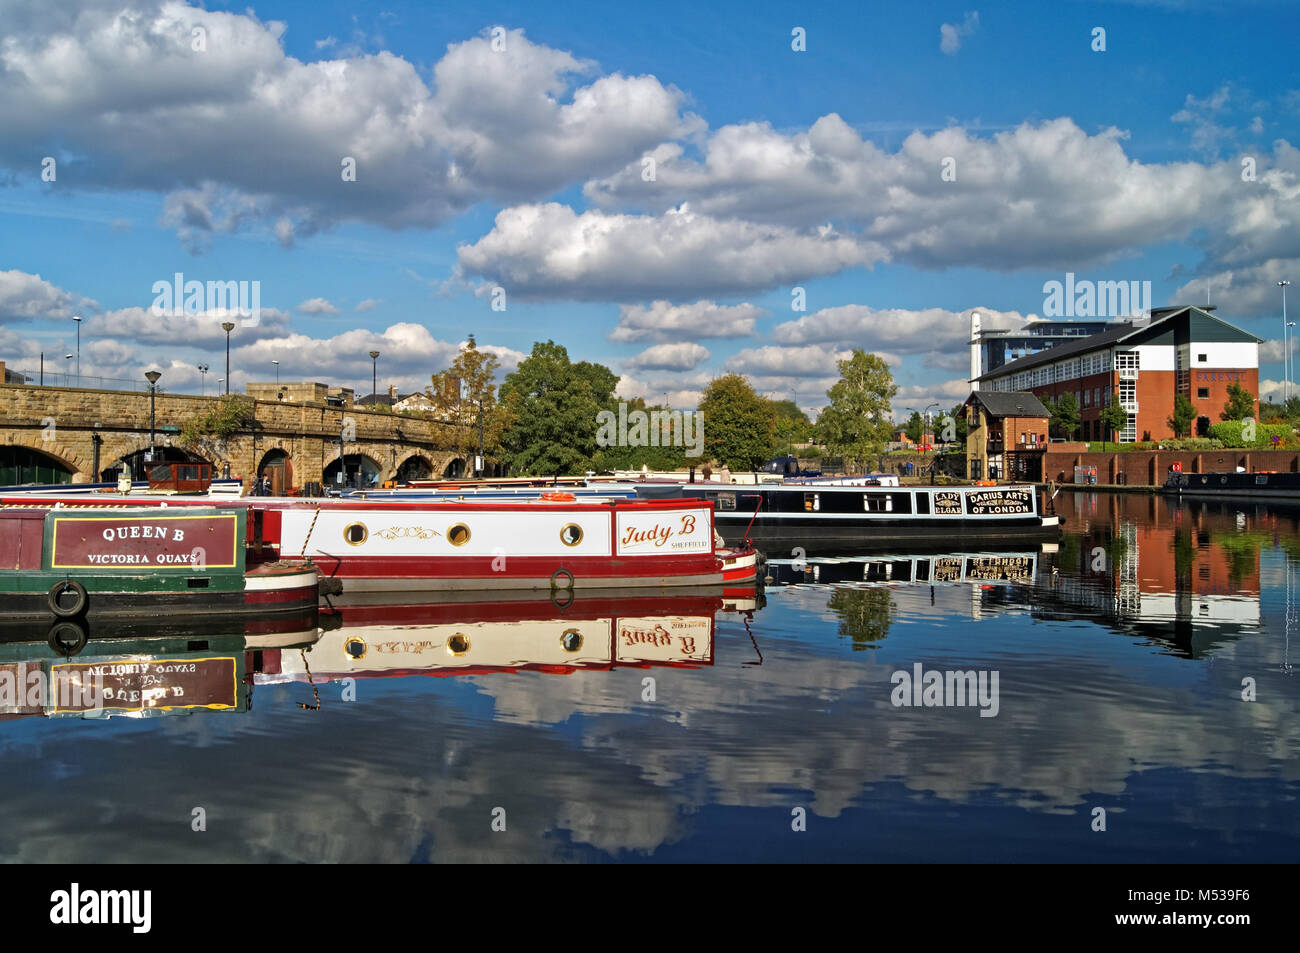 UK,South Yorkshire,Sheffield,Victoria Quays - Stock Image